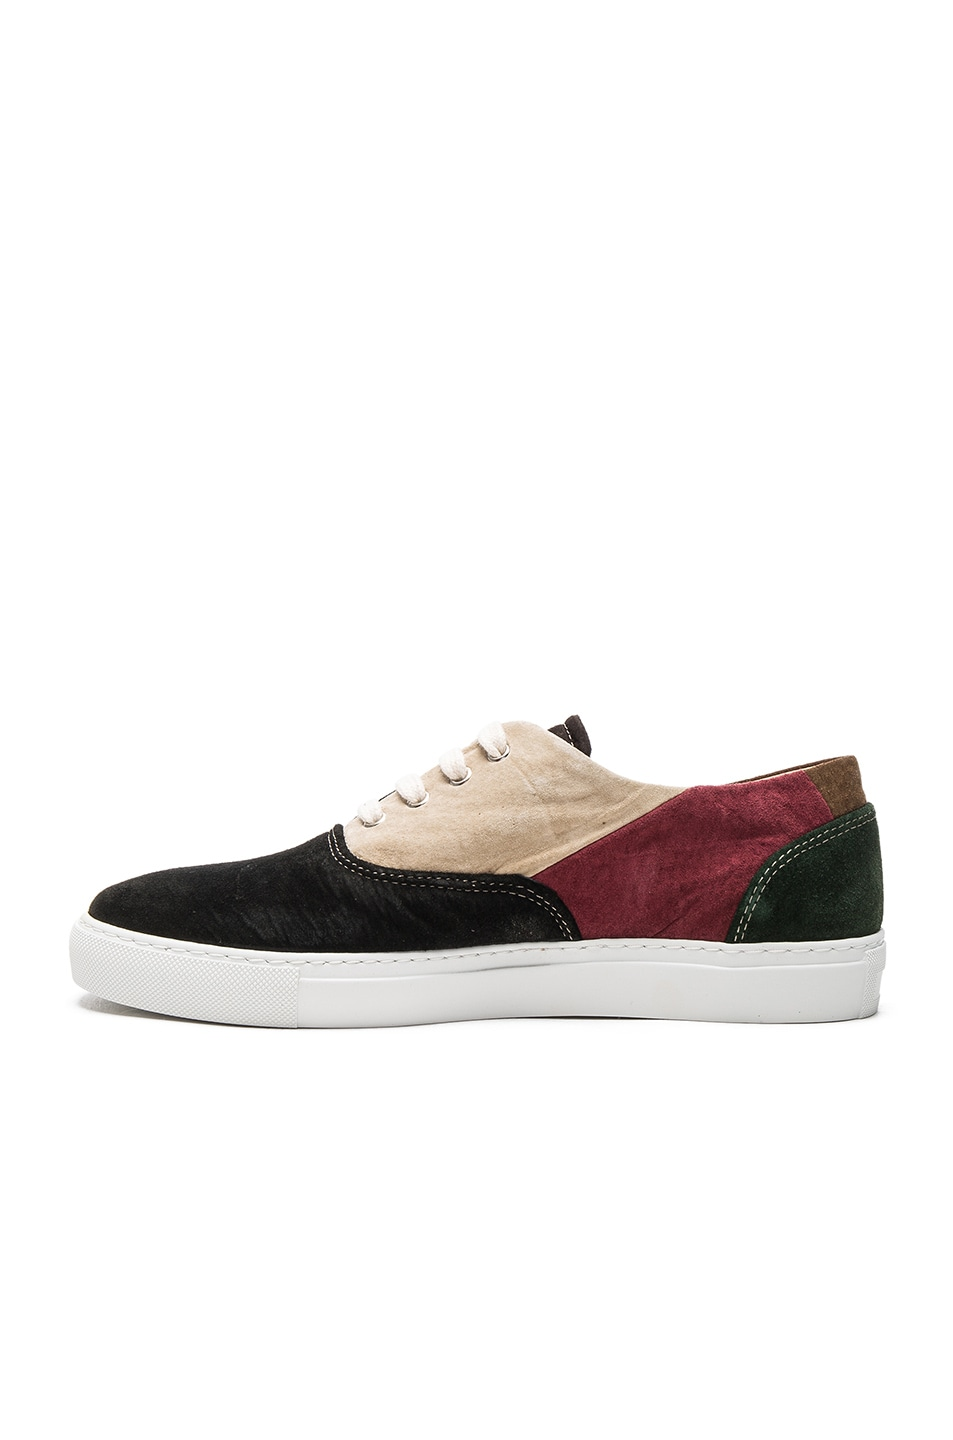 c076d01df2fc Image 5 of Comme Des Garcons SHIRT Suede Patchwork Sneakers in Mix 1